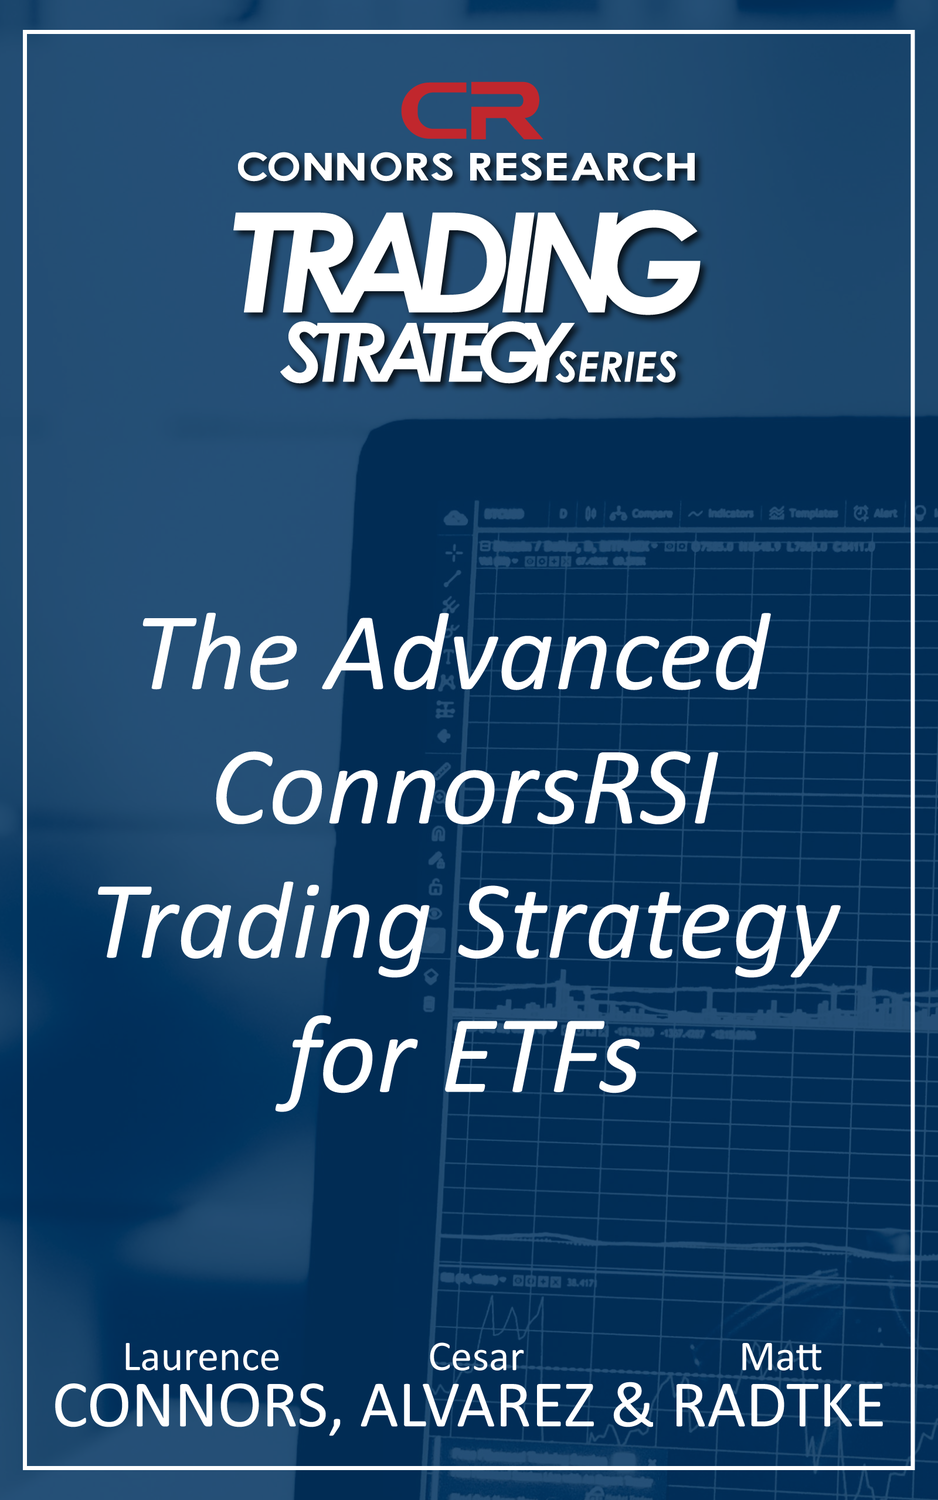 Connors Research Trading Strategy Series: Advanced ConnorsRSI Strategy for ETFs